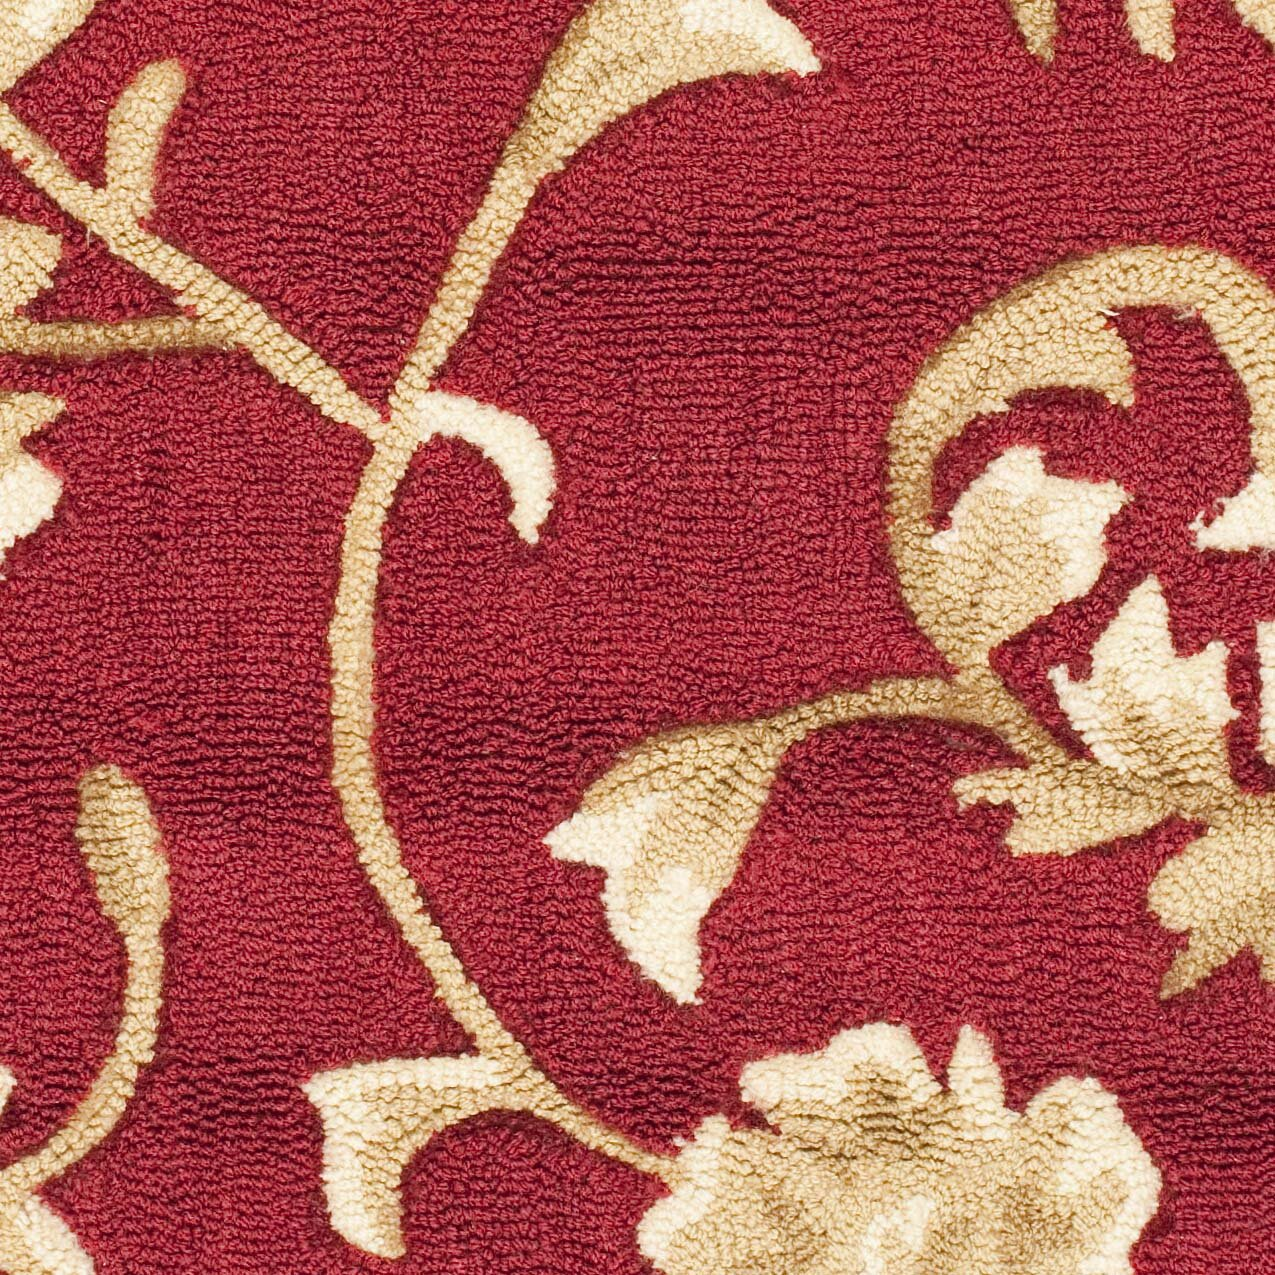 Safavieh duraarea rug red gold area rug reviews wayfair for Red and gold area rugs